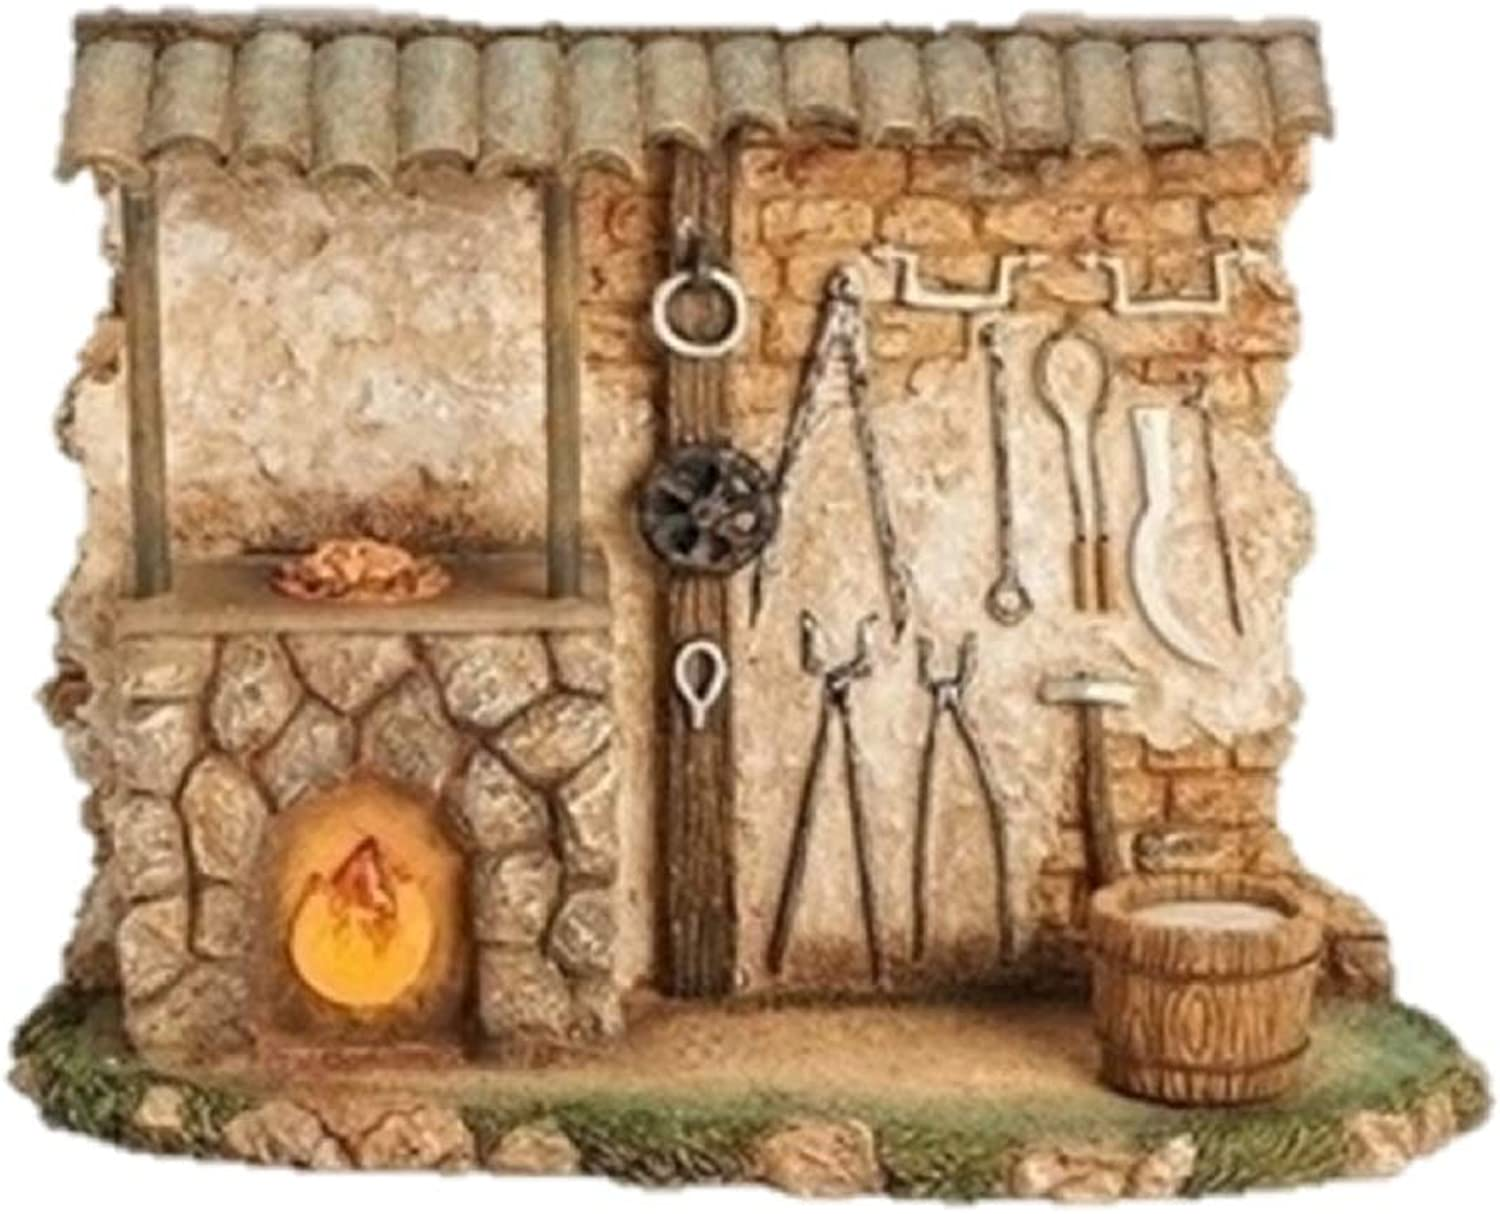 Fontanini Blacksmith Shop Light Up Building Italian Nativity Village Figurine